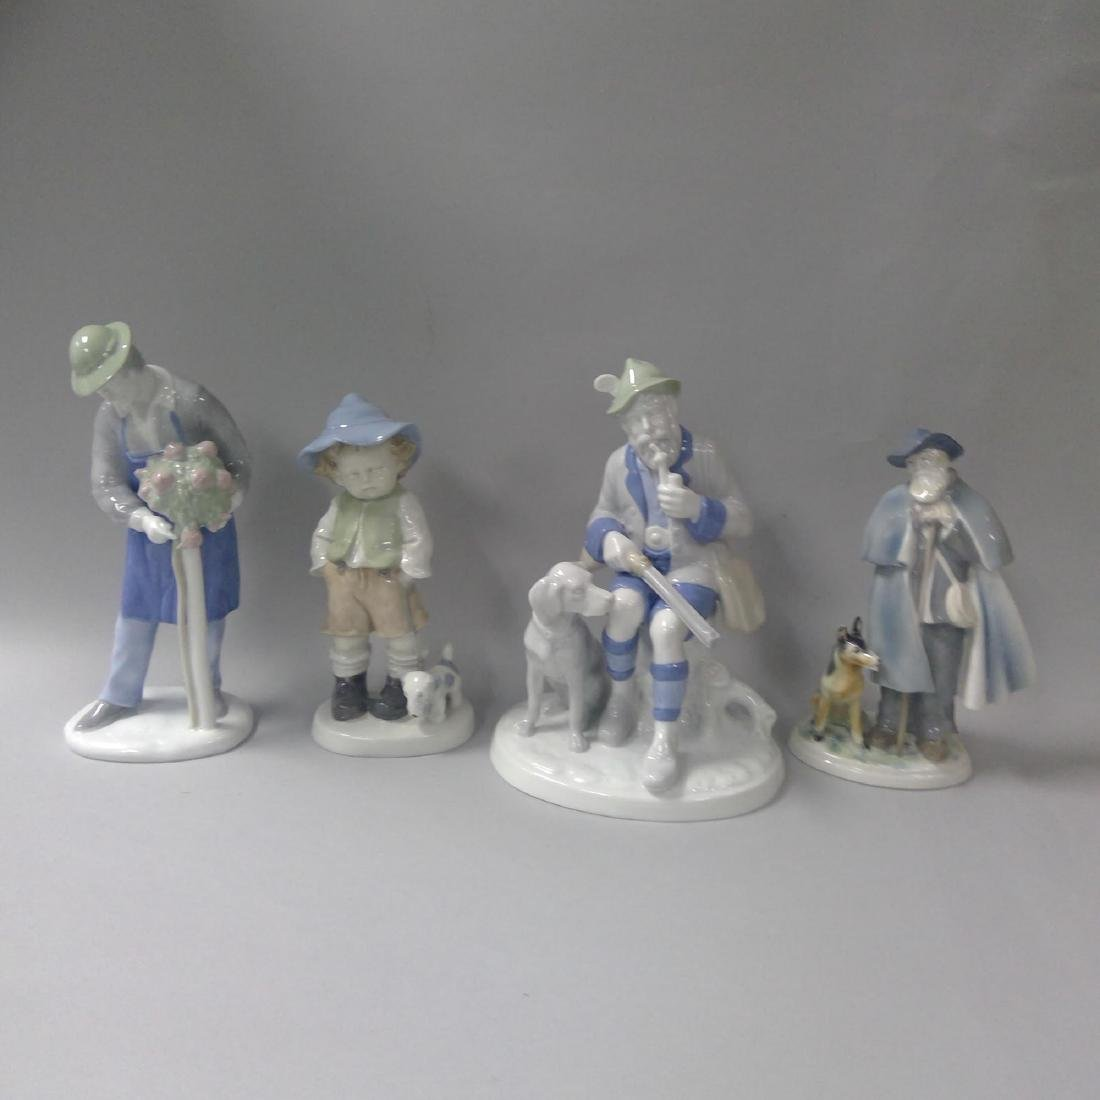 GROUP OF 4 LARGE GERMAN PORCELAIN FIGURINES